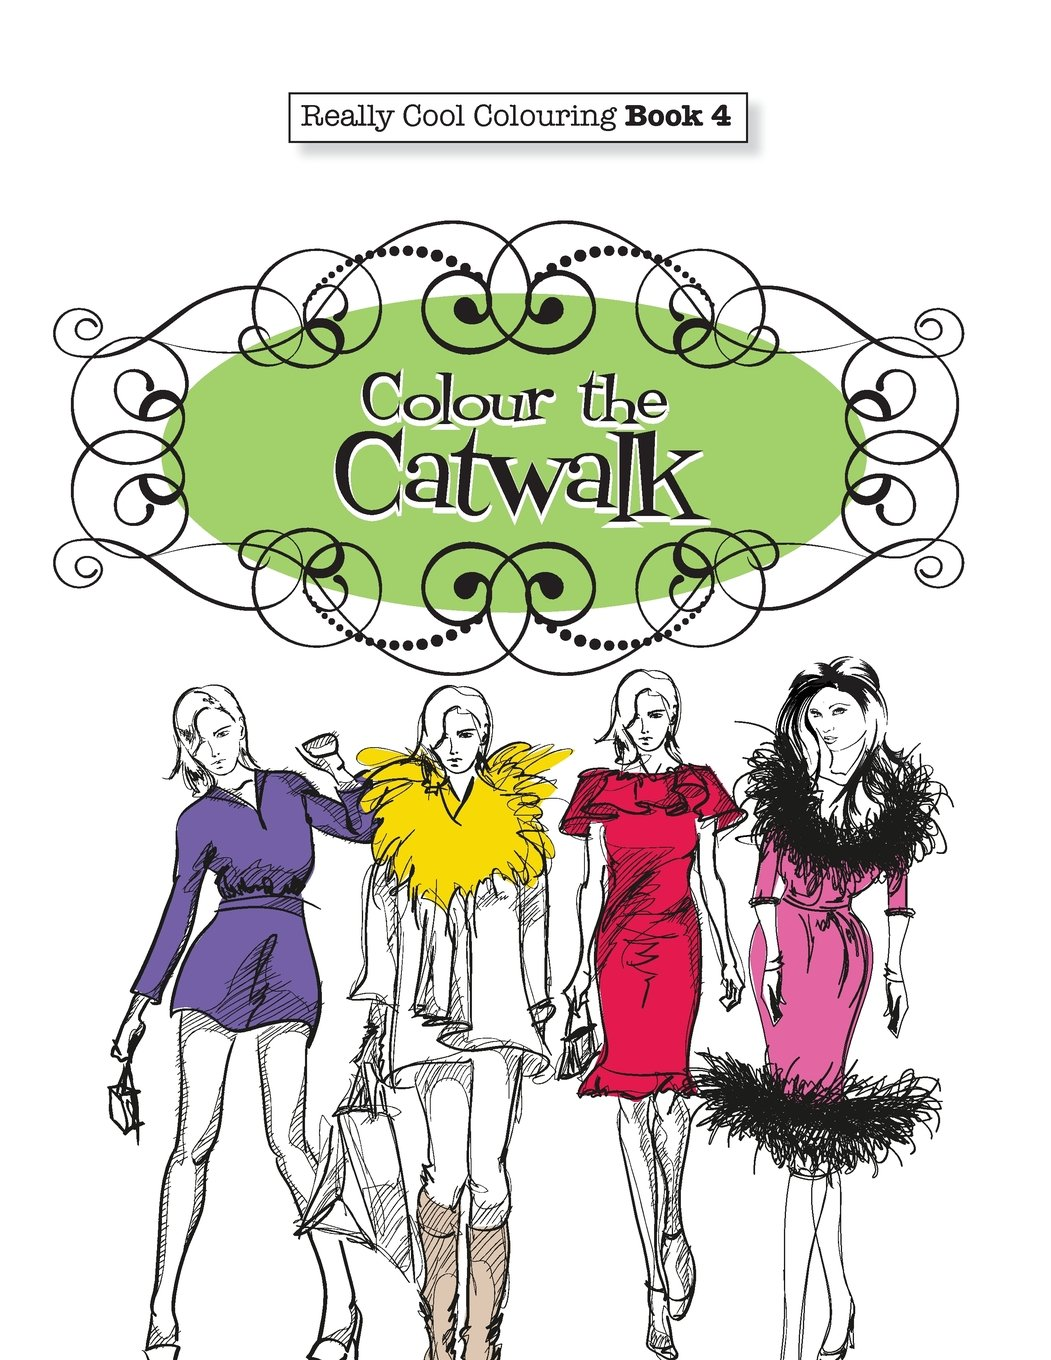 Really COOL Colouring Book 4: Colour The Catwalk (Really COOL Colouring Books) (Volume 4)